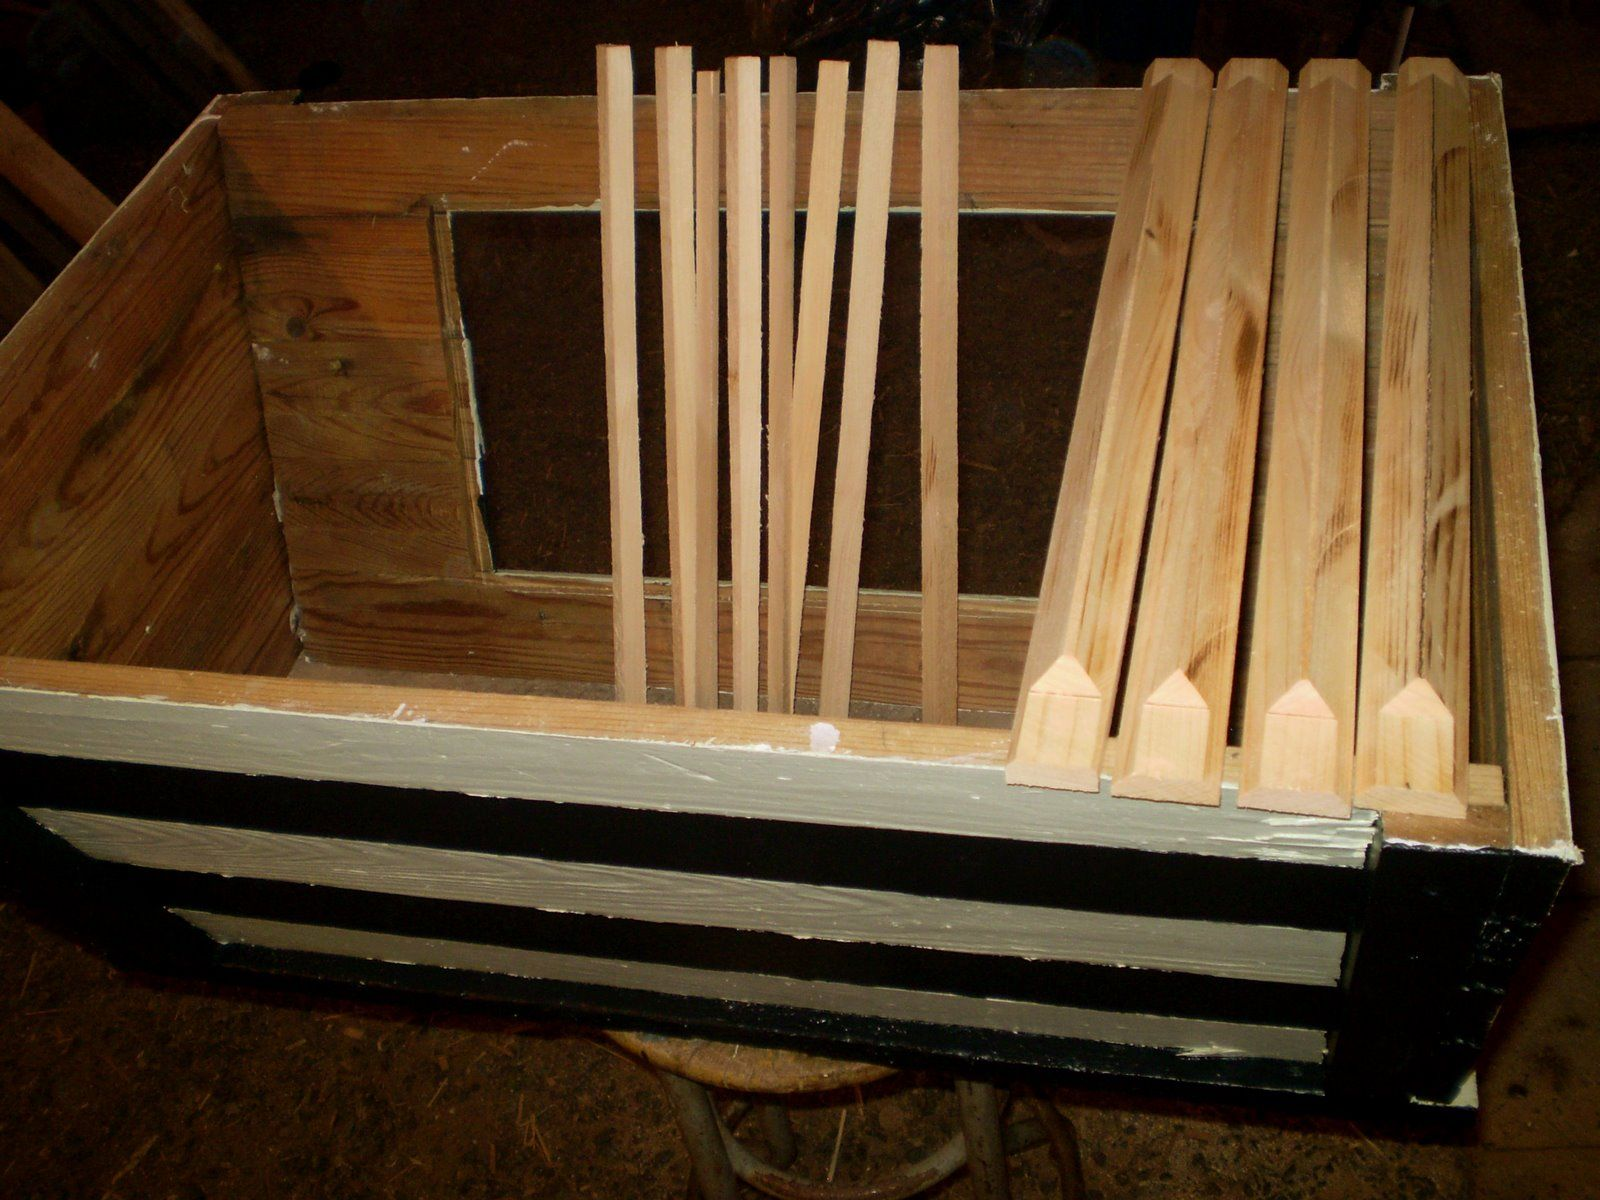 This Is The Easiest Way I Found To Build One Piece Top Bars For My KTB Hives:  Cut The Board To Top Bar Length, Center On The Hive And.